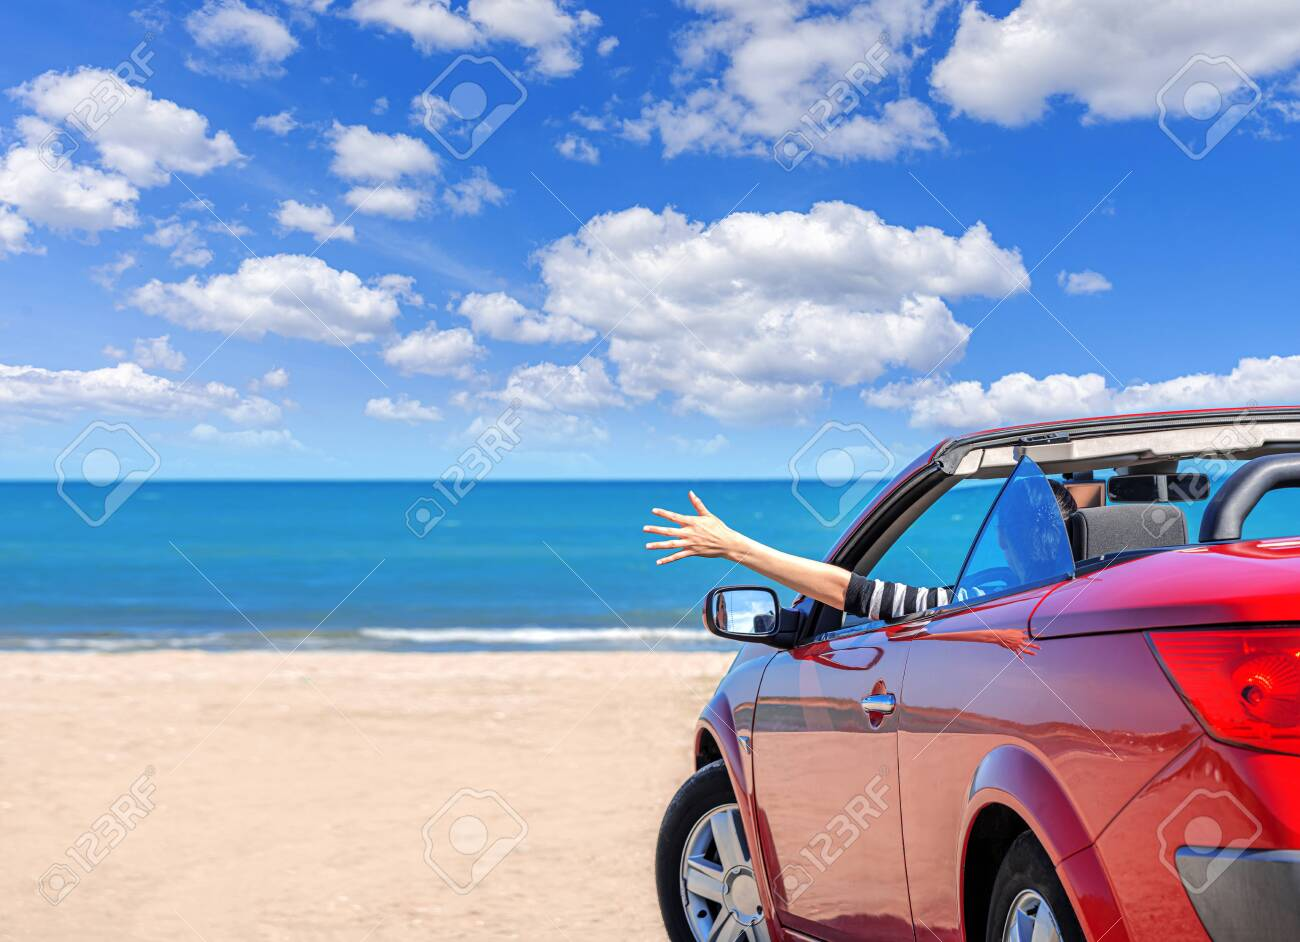 Red car on the beach. Vacation and freedom concept. - 151295421